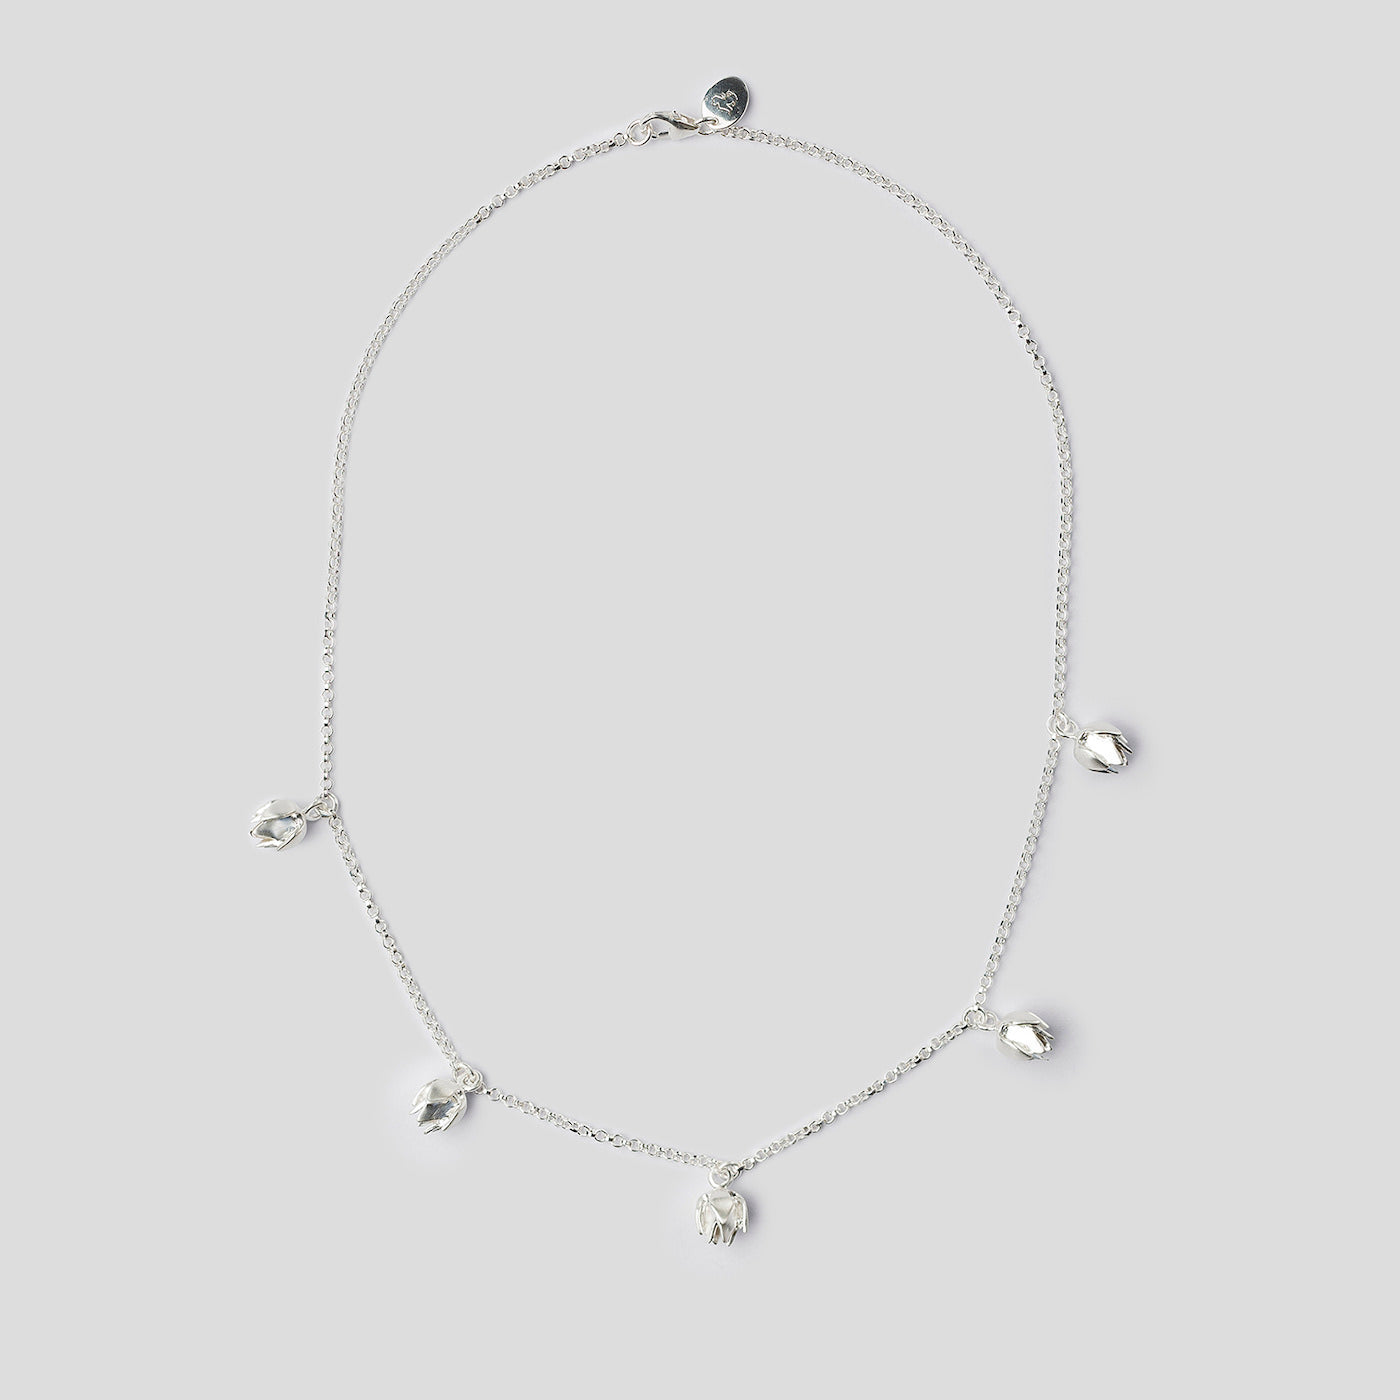 silver lotus bud necklace on white background